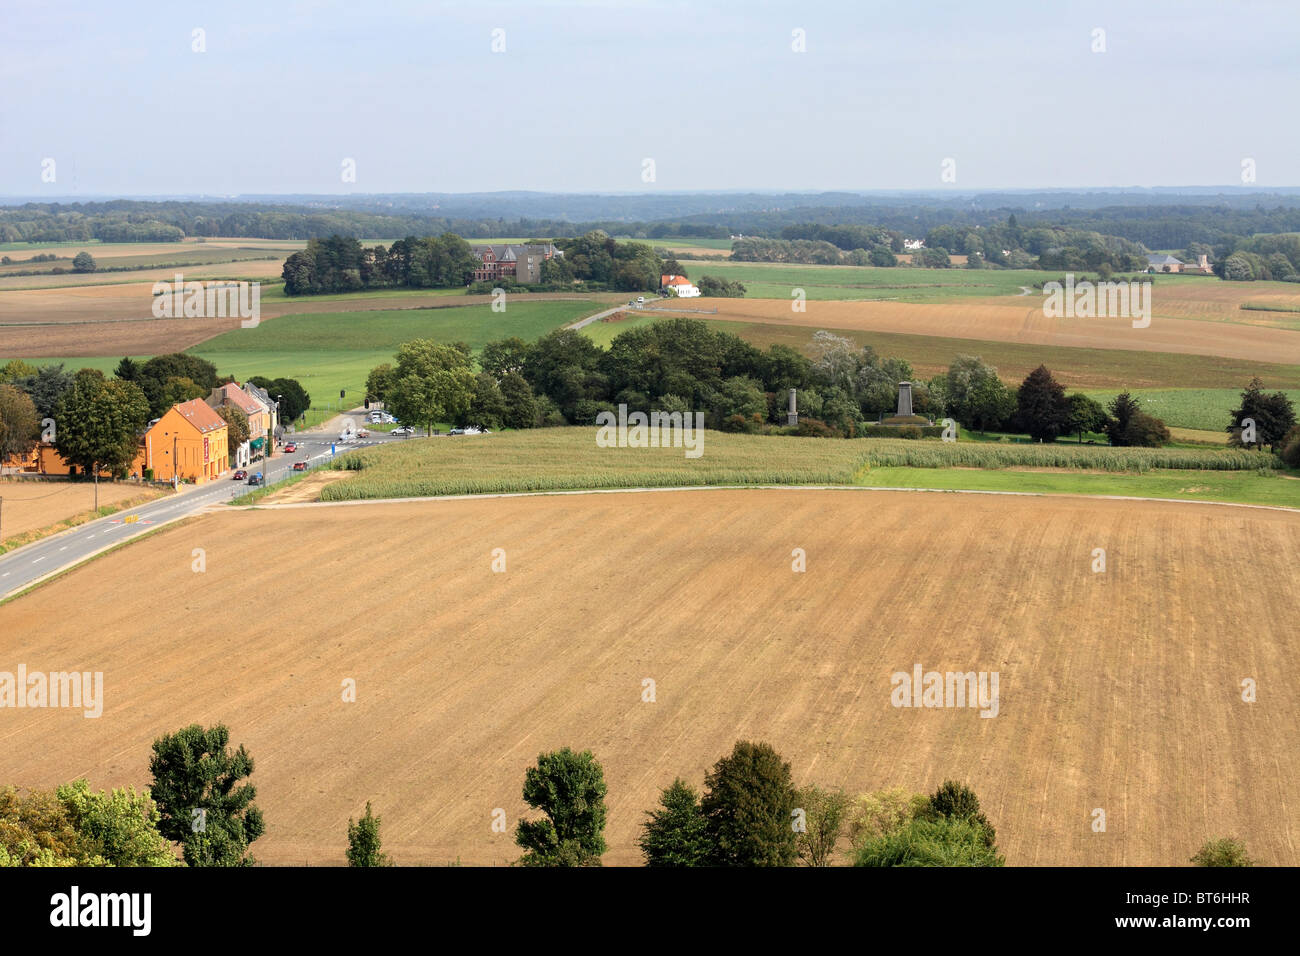 View of  Hougoumont farmhouse a key location on the battlefield of Waterloo Belgium fought in 1815 - Stock Image